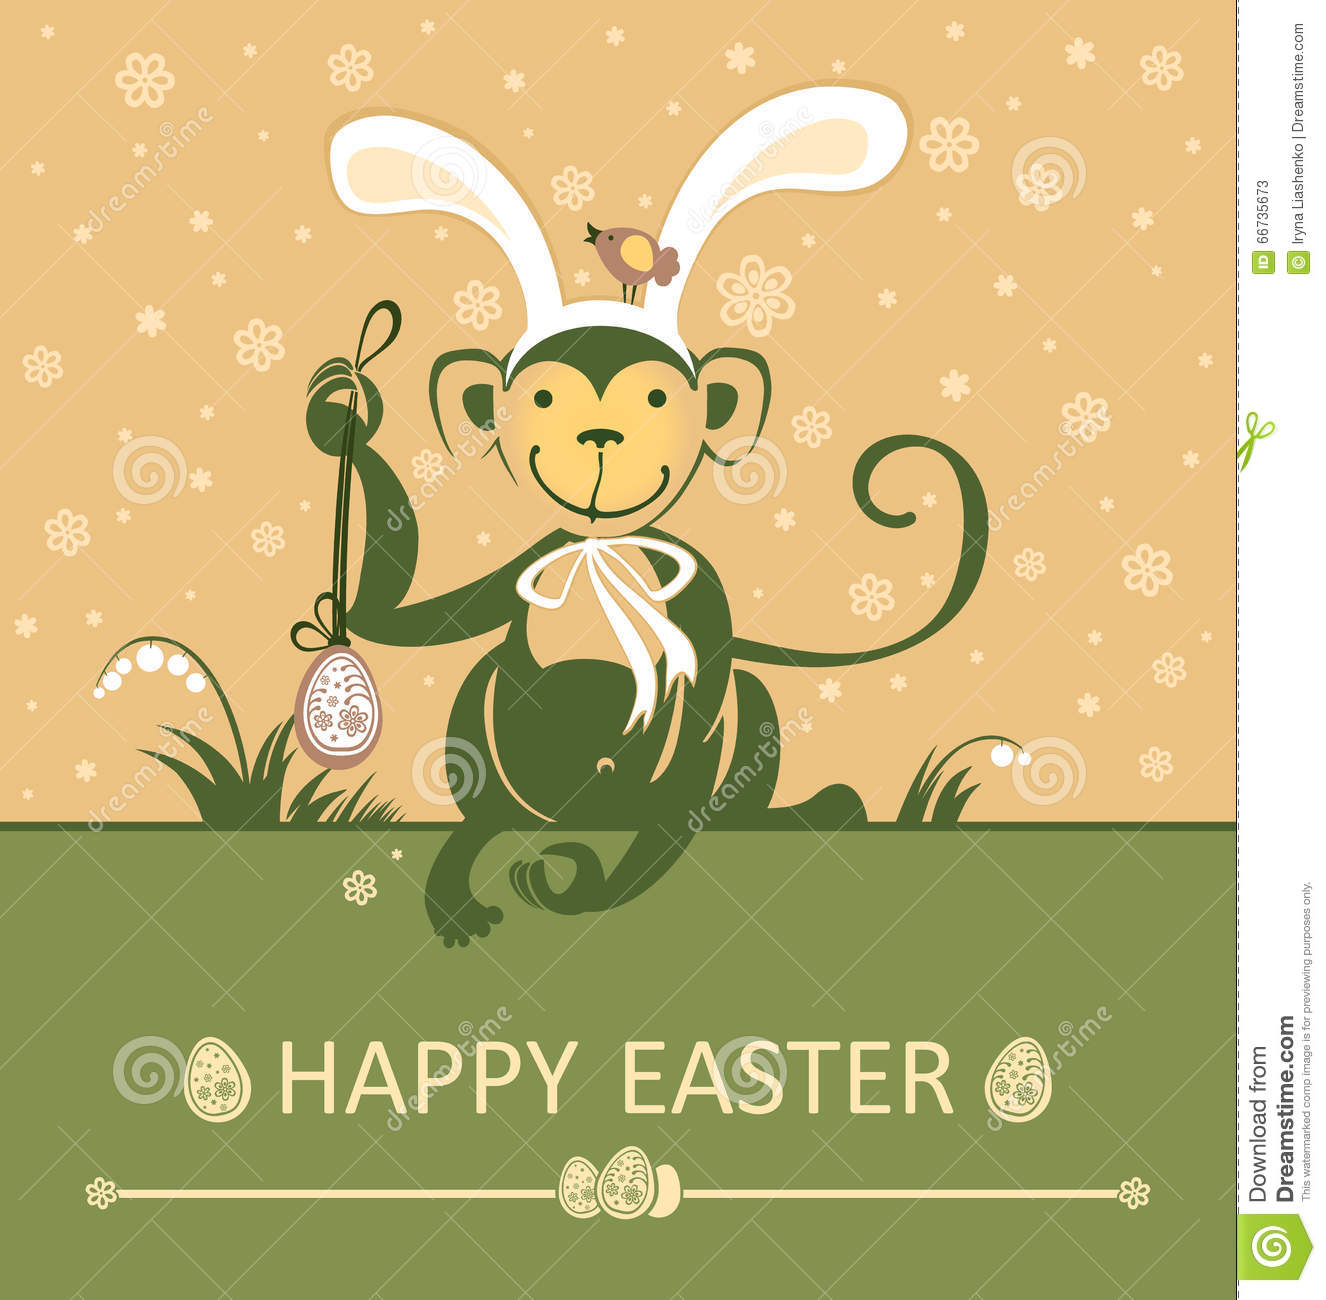 Easter card with monkey with rabbit ears stock illustration easter card with monkey with rabbit ears kristyandbryce Choice Image